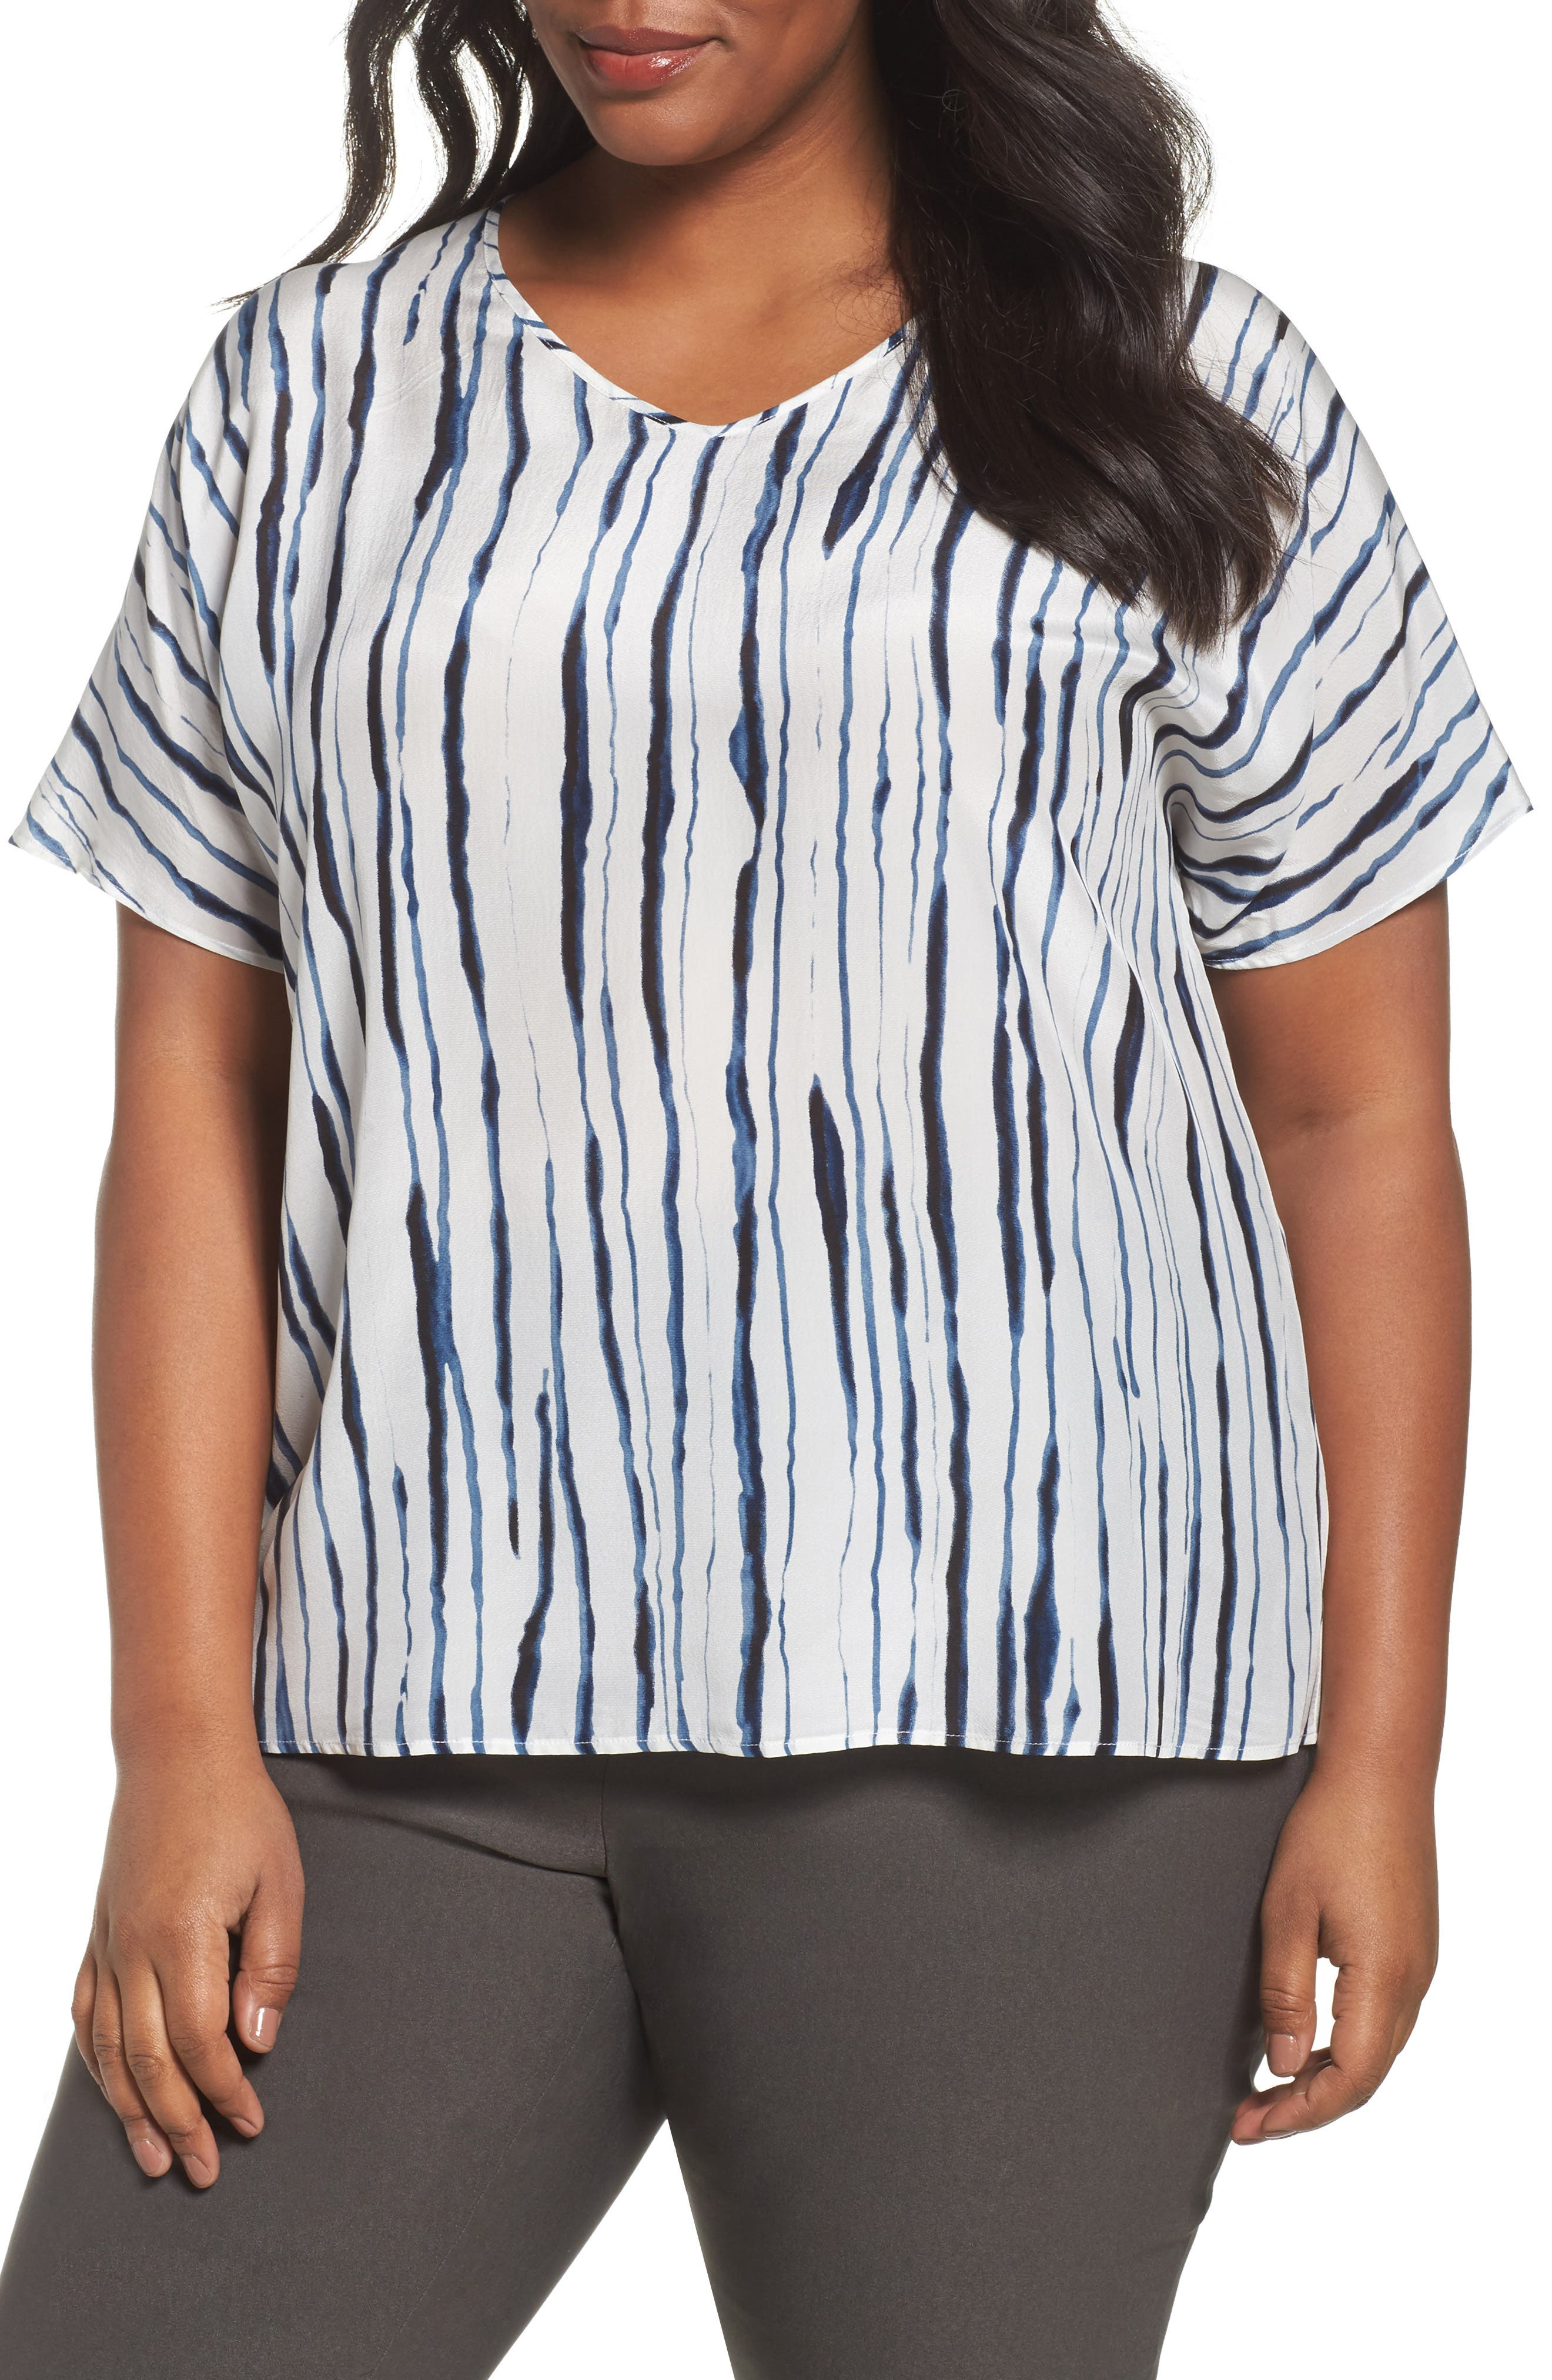 Main Image - NIC+ZOE Fluid Ink Silk Blend Tee (Plus Size)